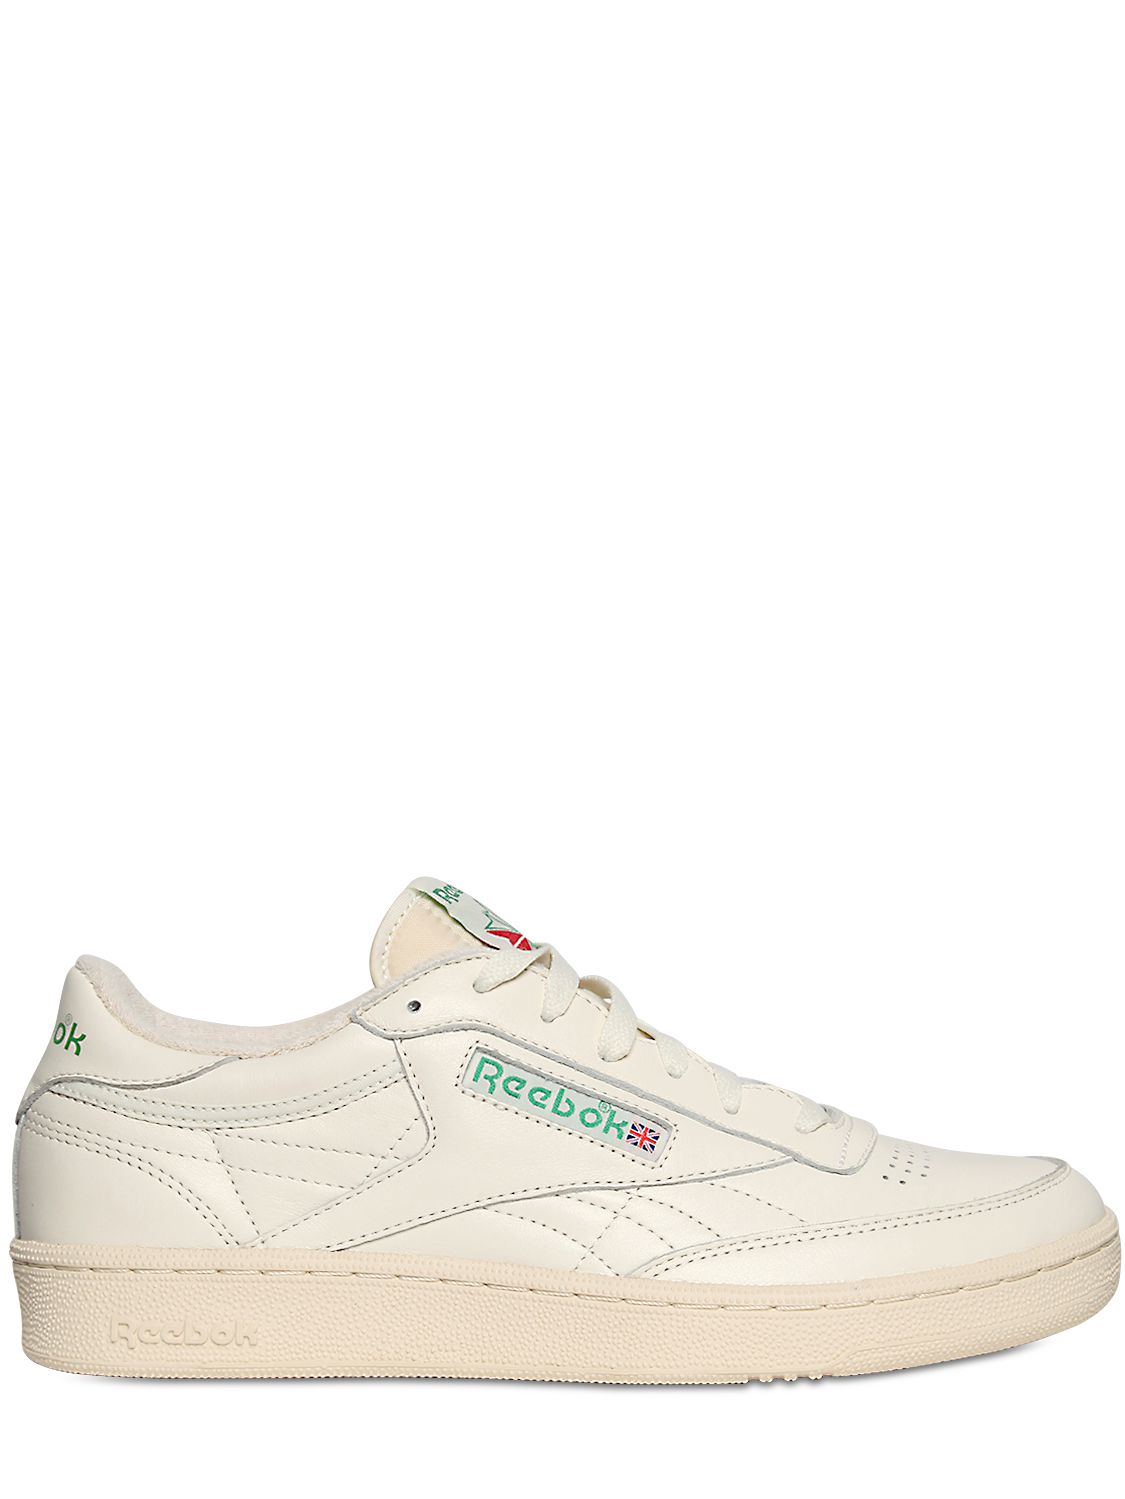 c211baa91d52 Club C 85 Vintage S T Y L E t Reebok Shoes and Sneakers